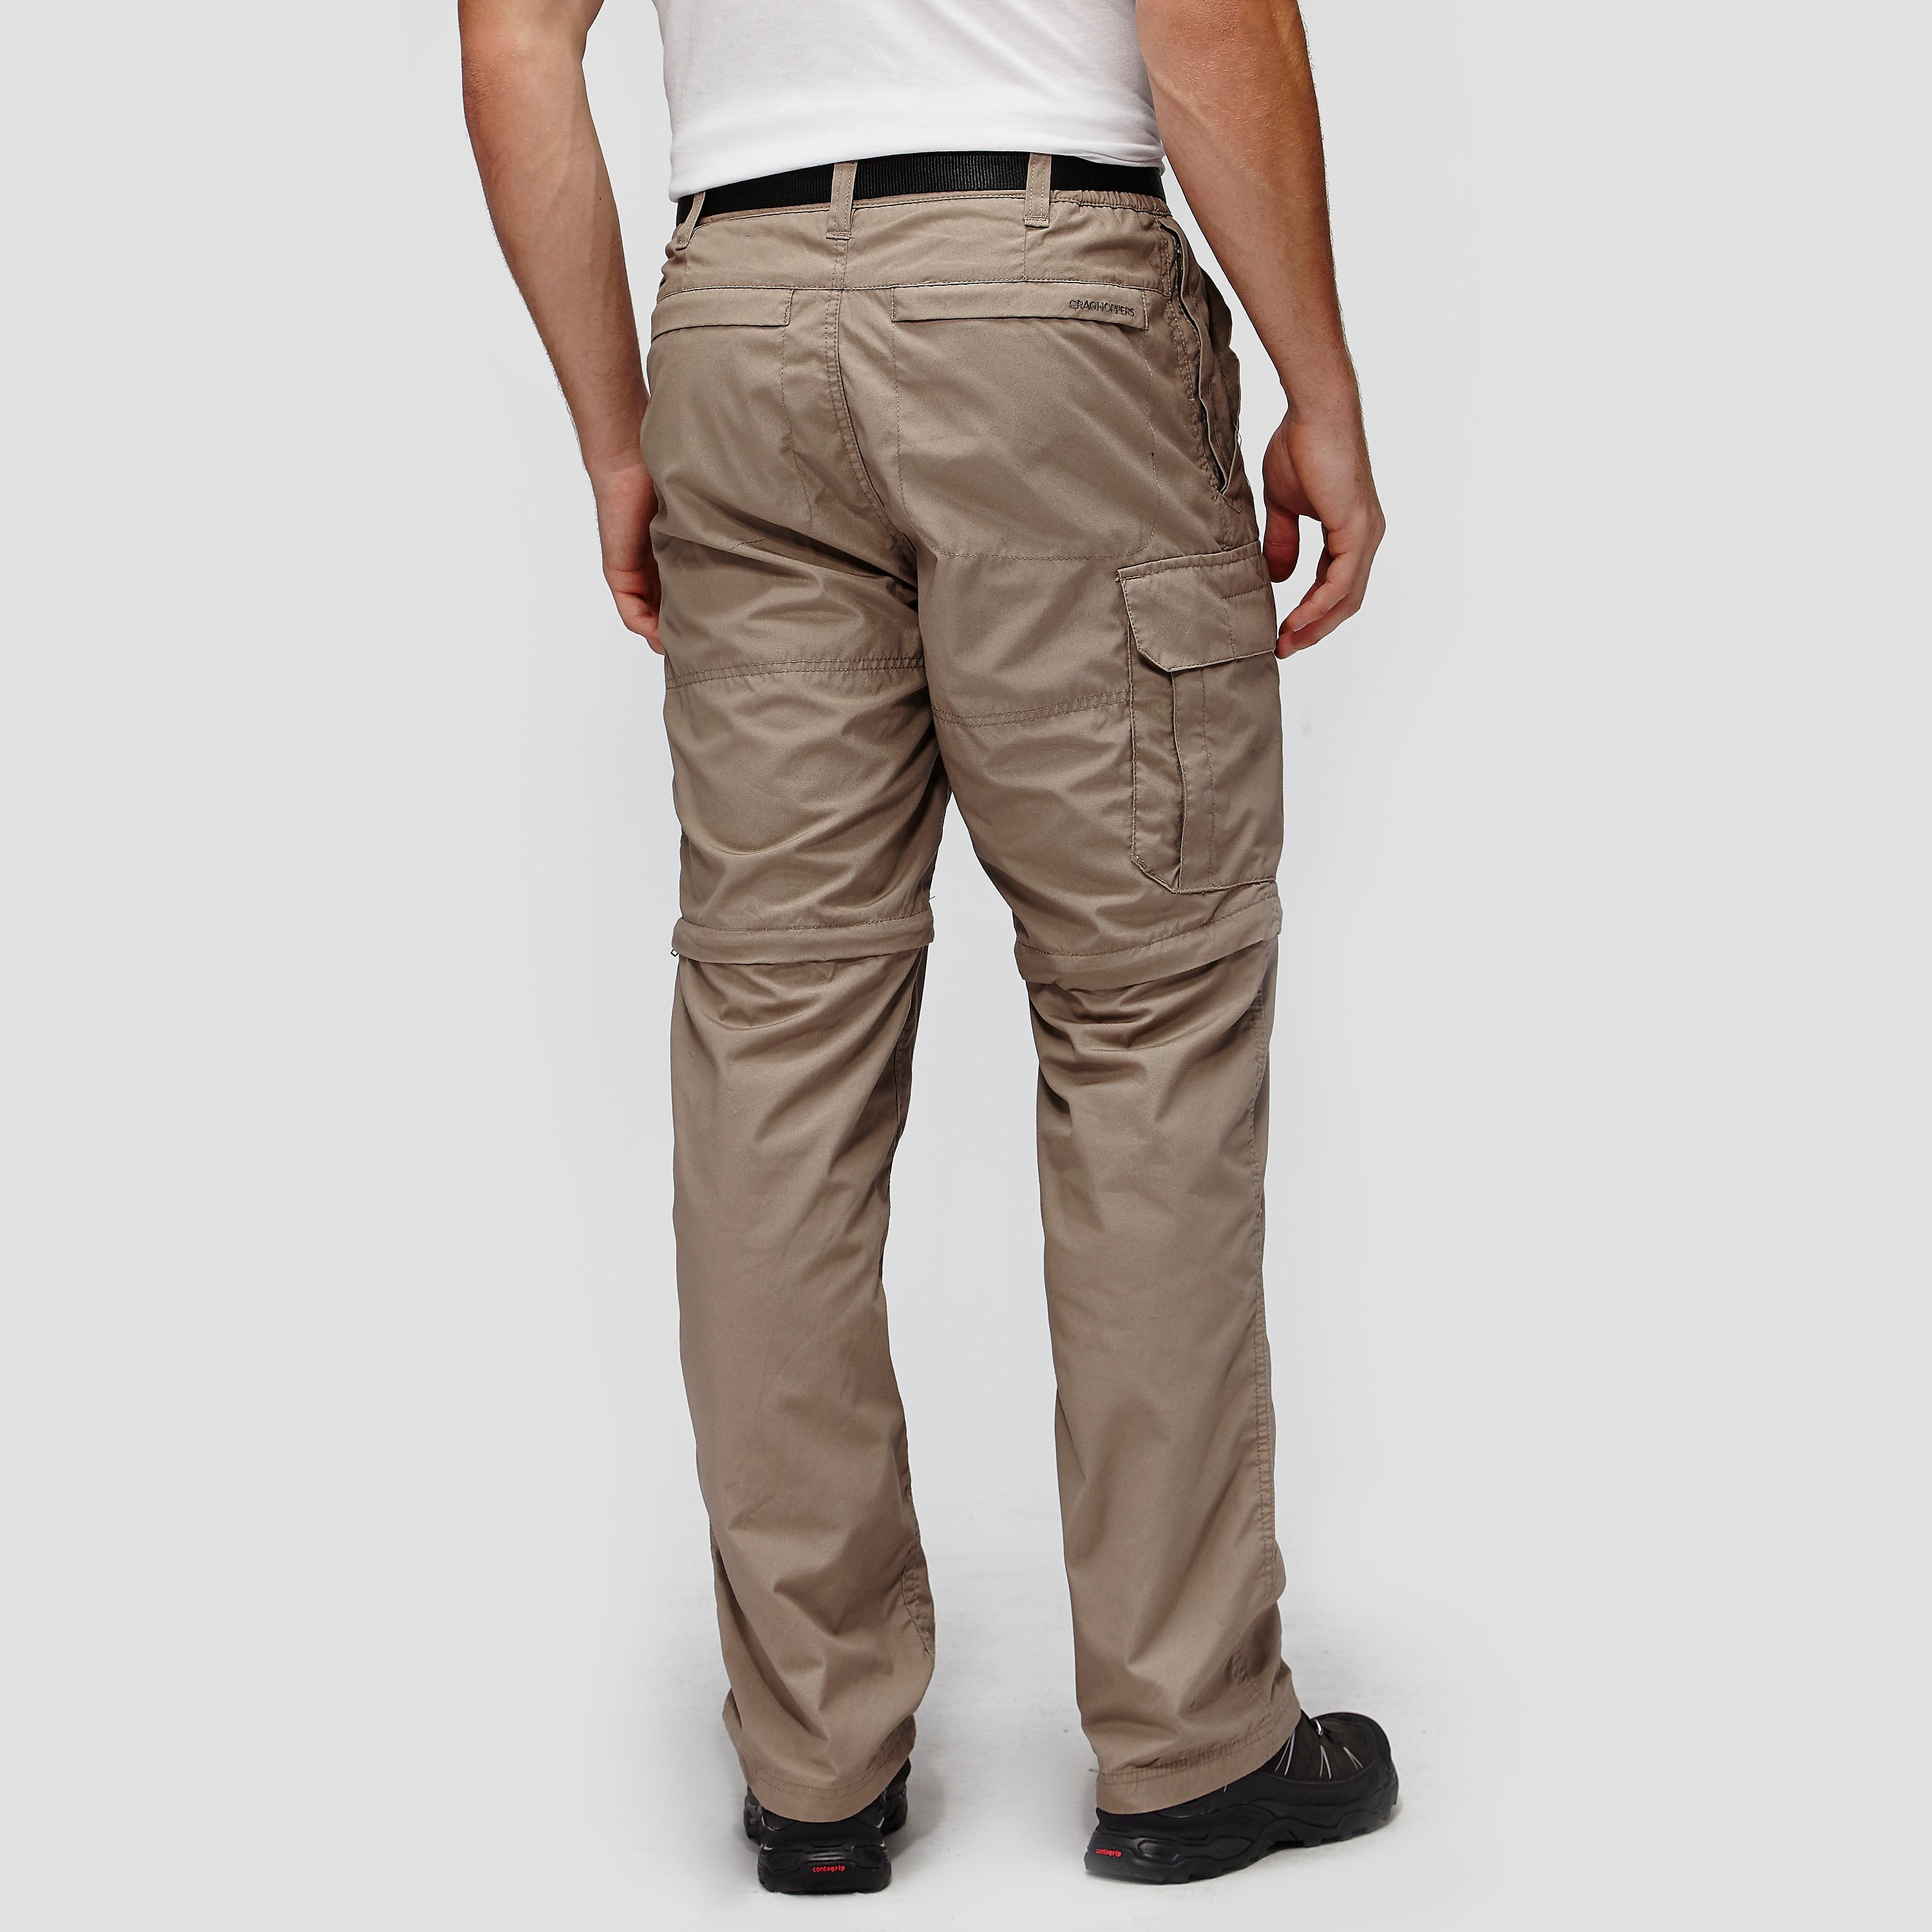 Craghoppers Kiwi Regular Length Convertible Men's Trousers